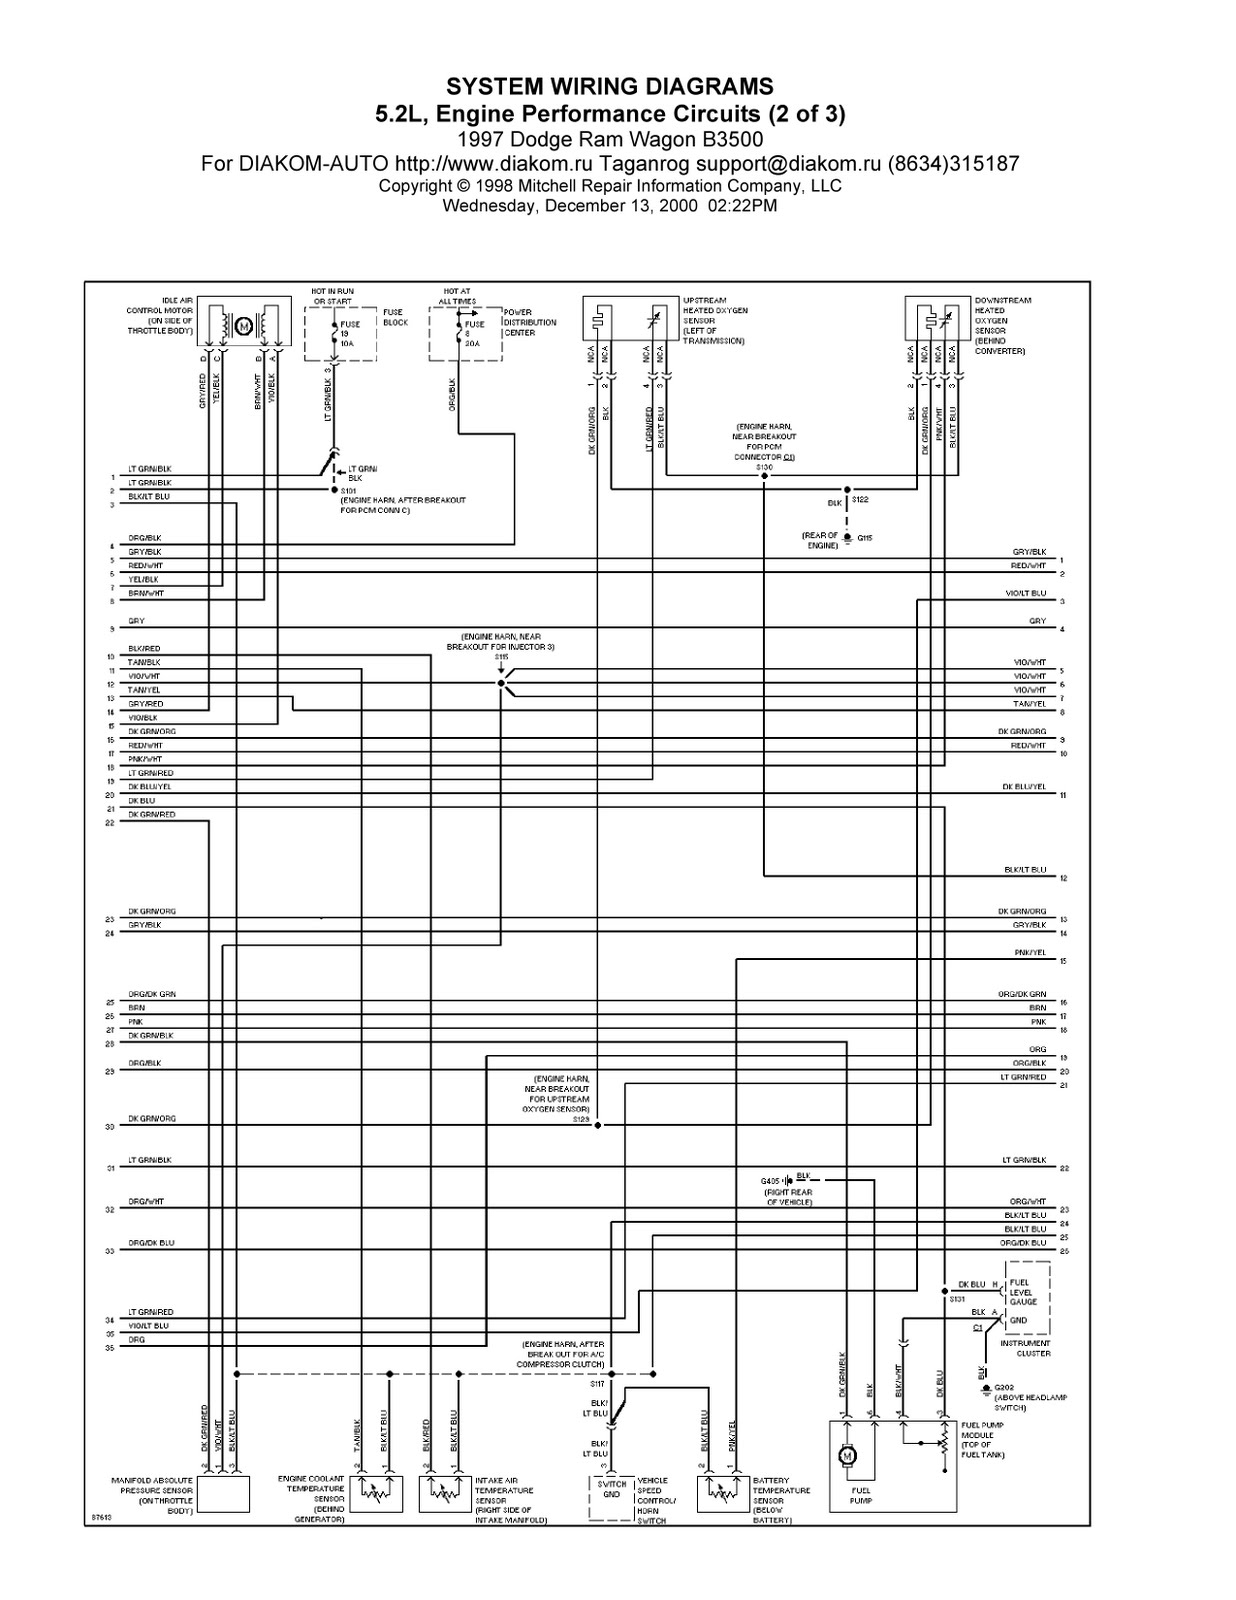 Wiring Diagram For 1997 Dodge Ram Radio : Dodge ram wiring harness get free image about